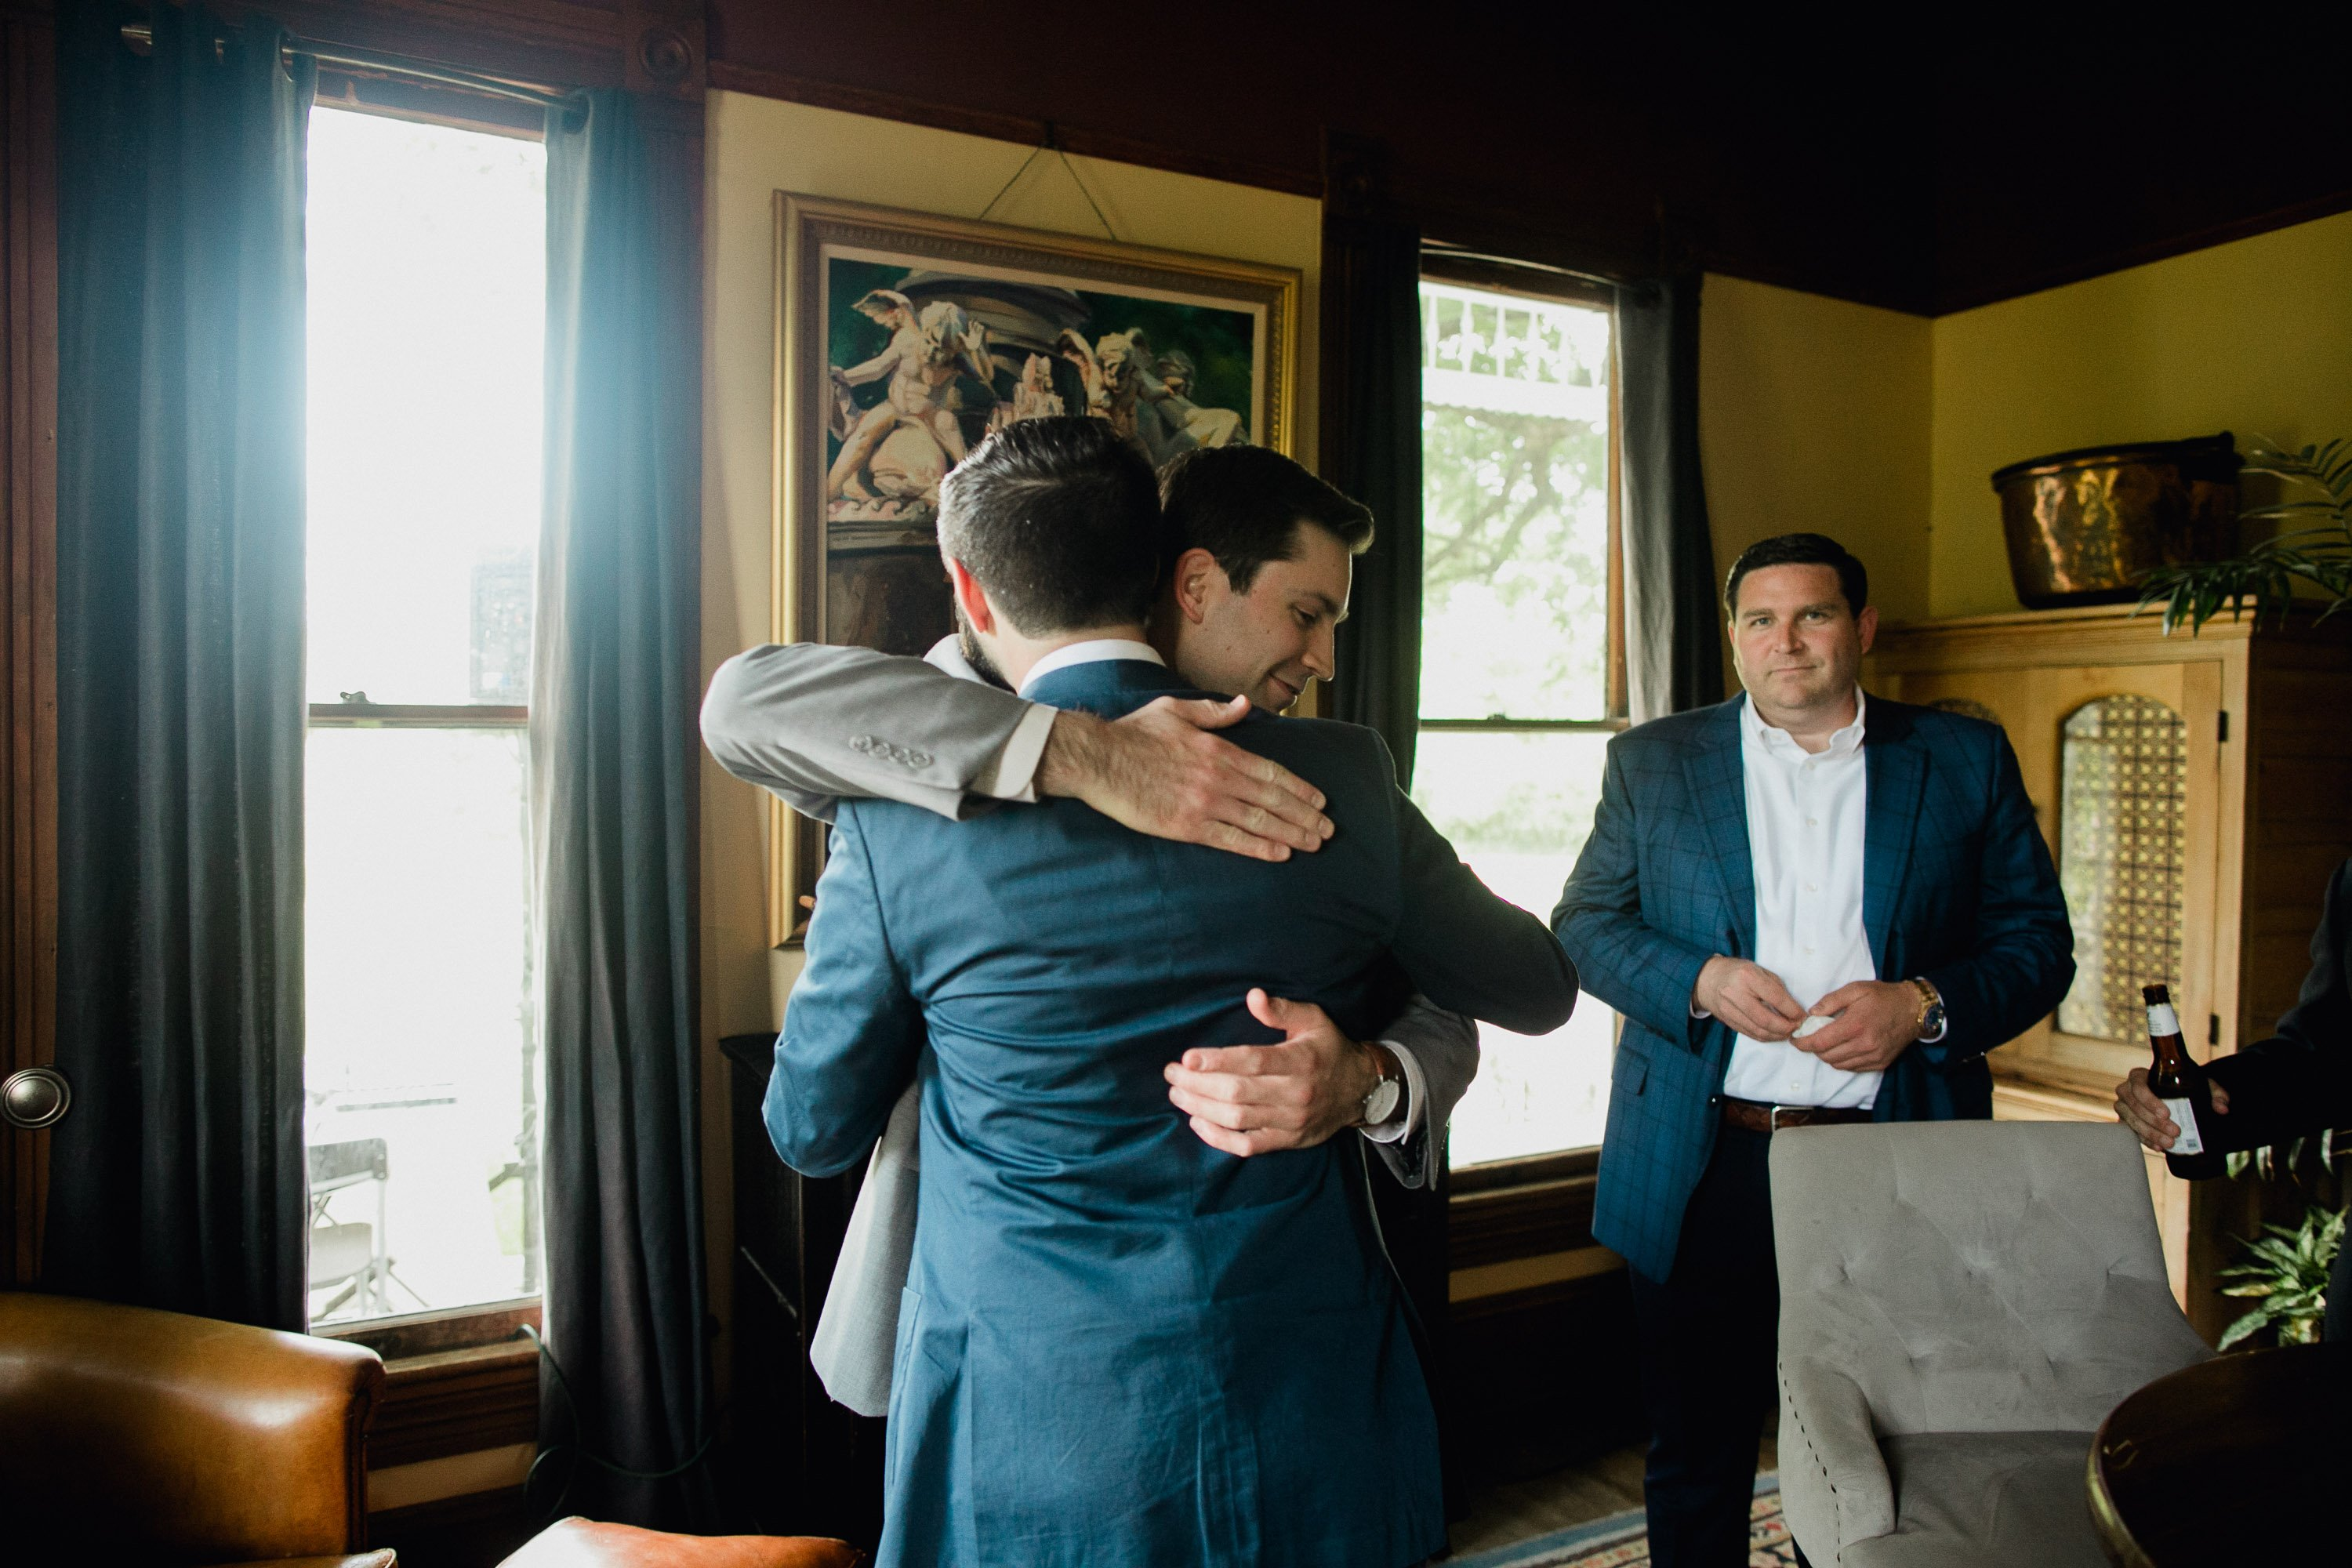 candid photo of a groom greeting friends during the getting ready part of the wedding day at Barr mansion